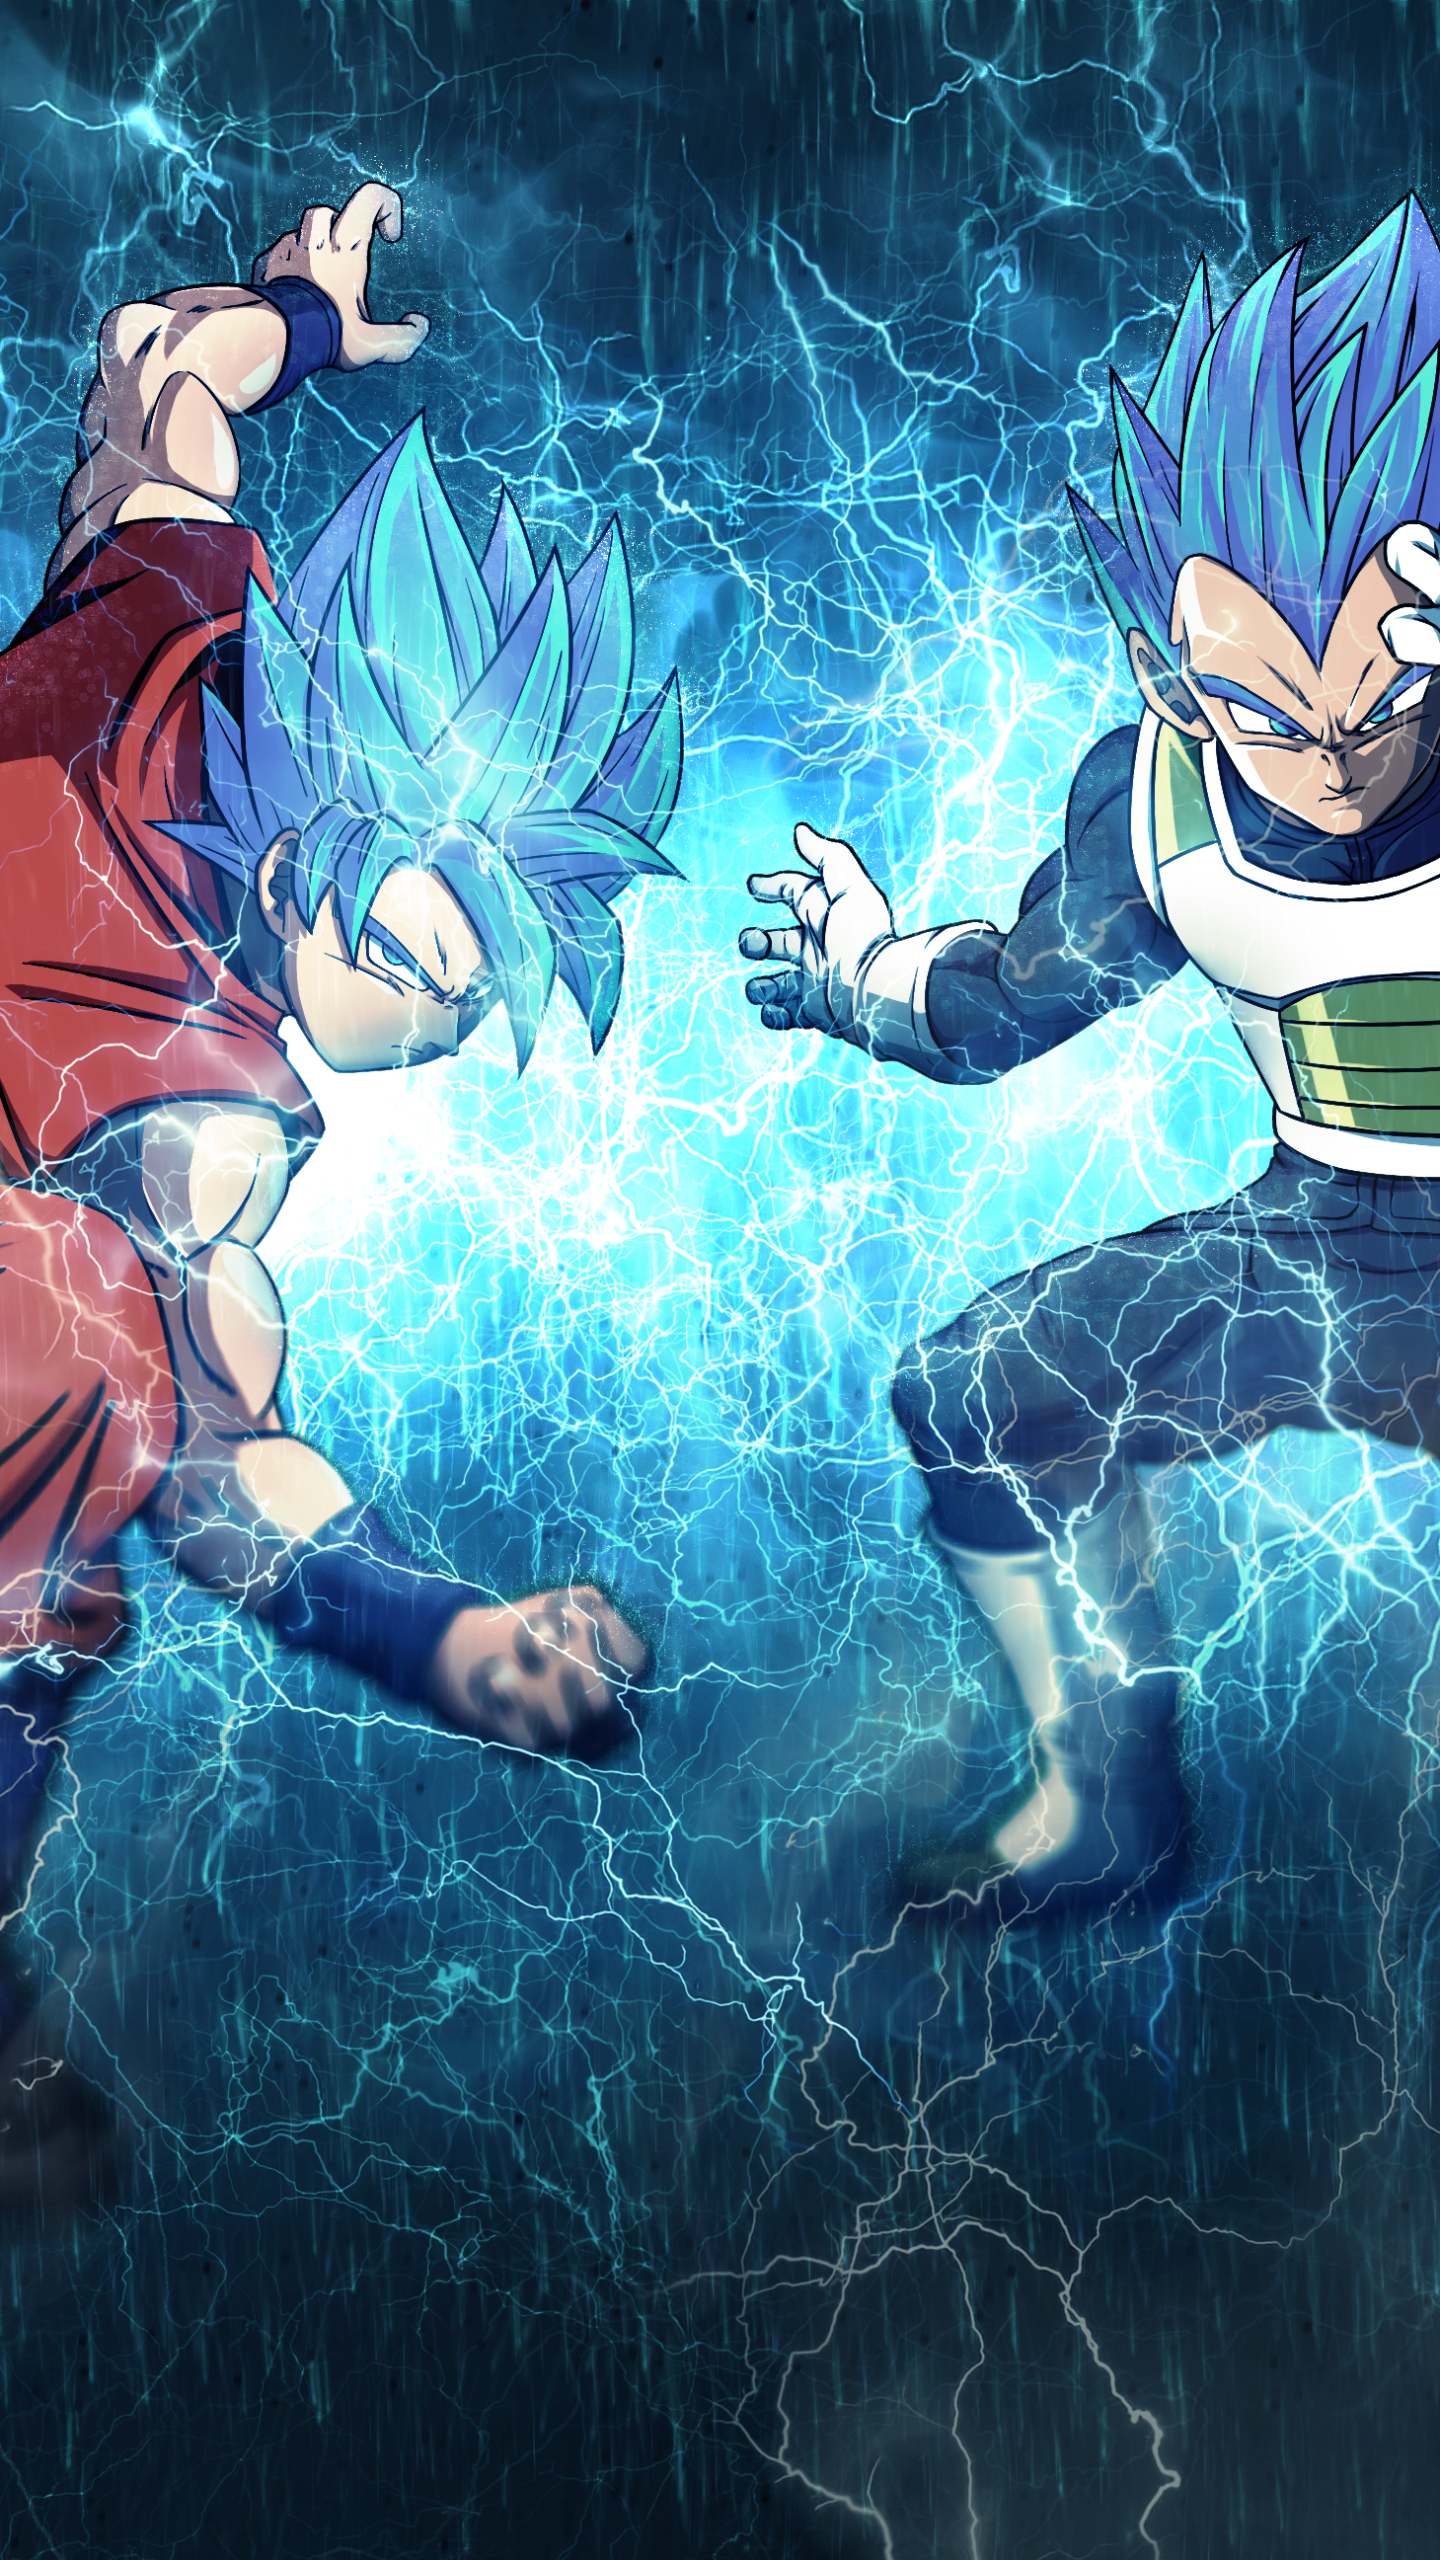 Dragon Ball Super Wallpaper Iphone 7 Plus 1440x2560 Wallpaper Teahub Io